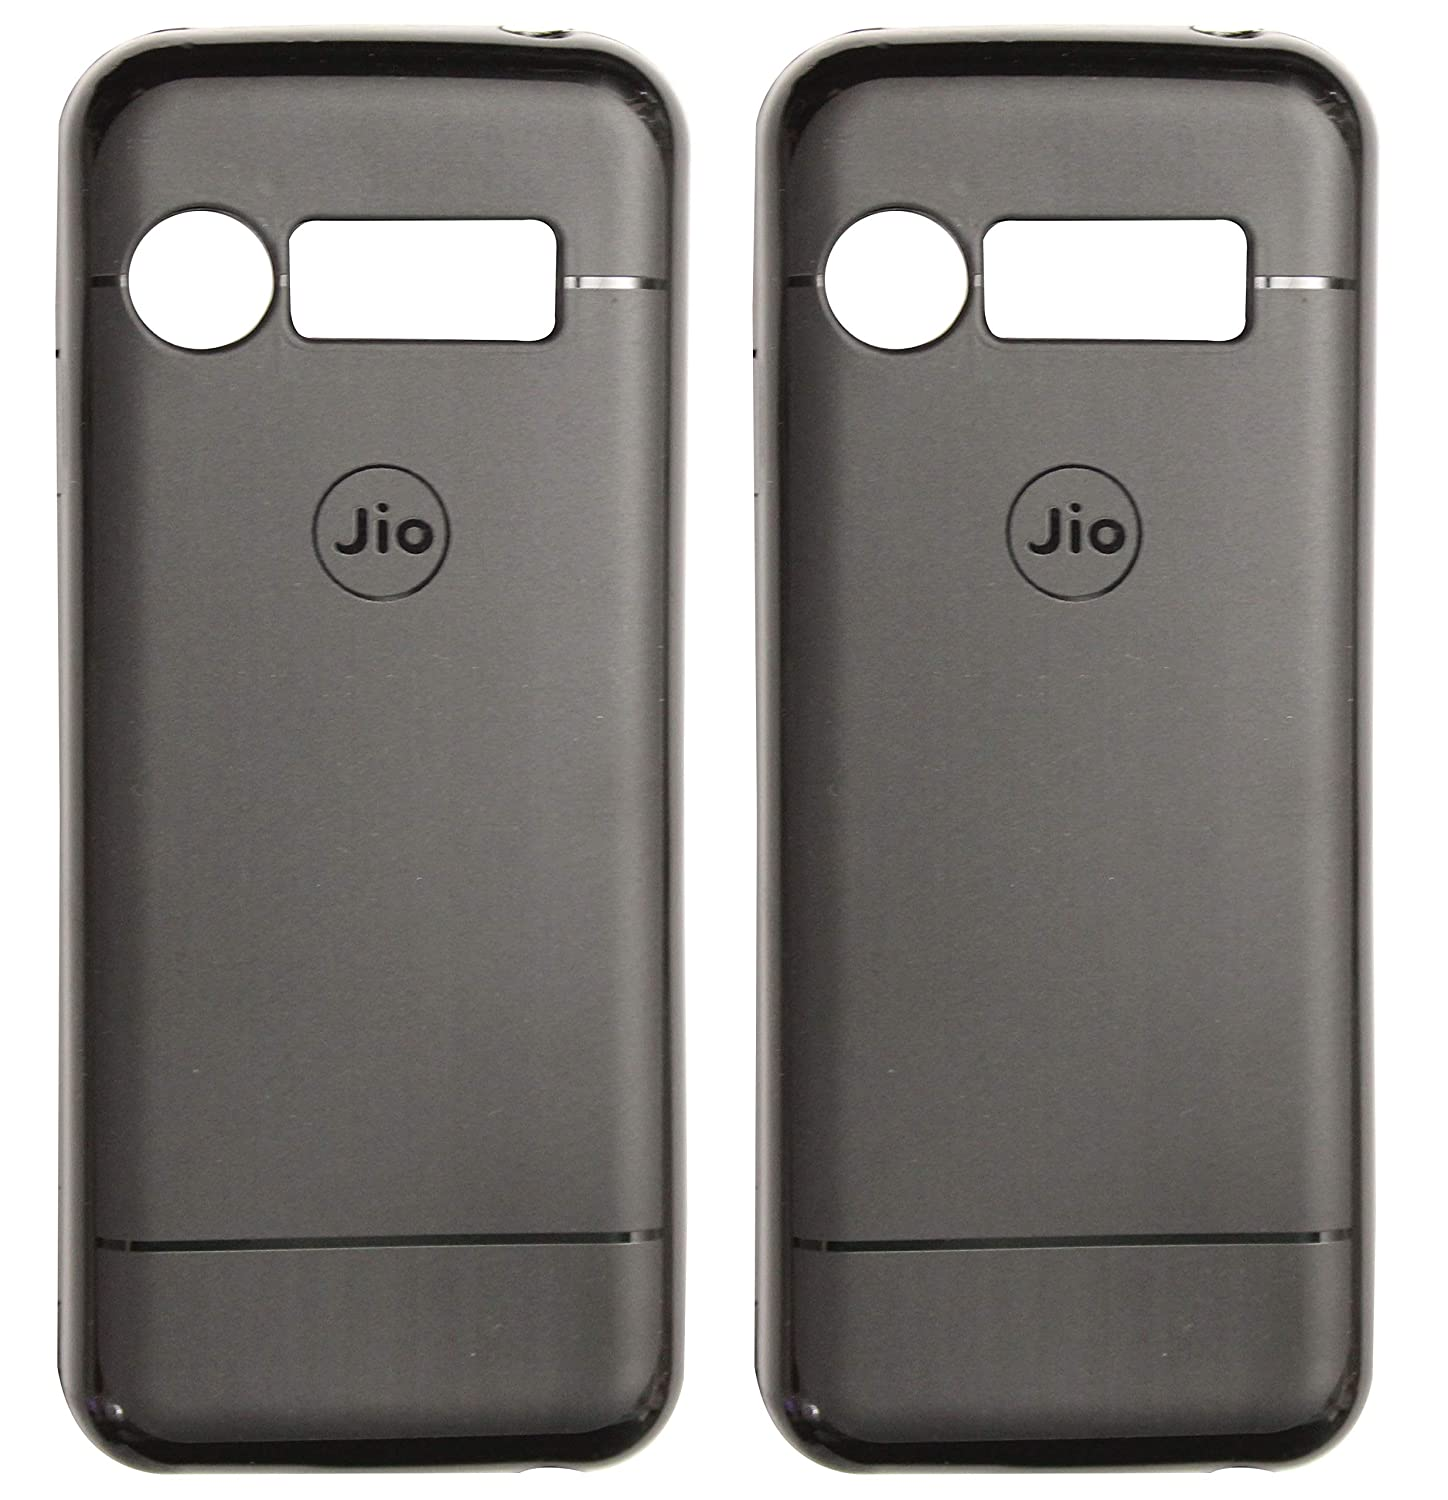 separation shoes a5b14 9ad68 FCS Mobile Back Cover for Jio Phone Lyf F90M: Amazon.in: Electronics